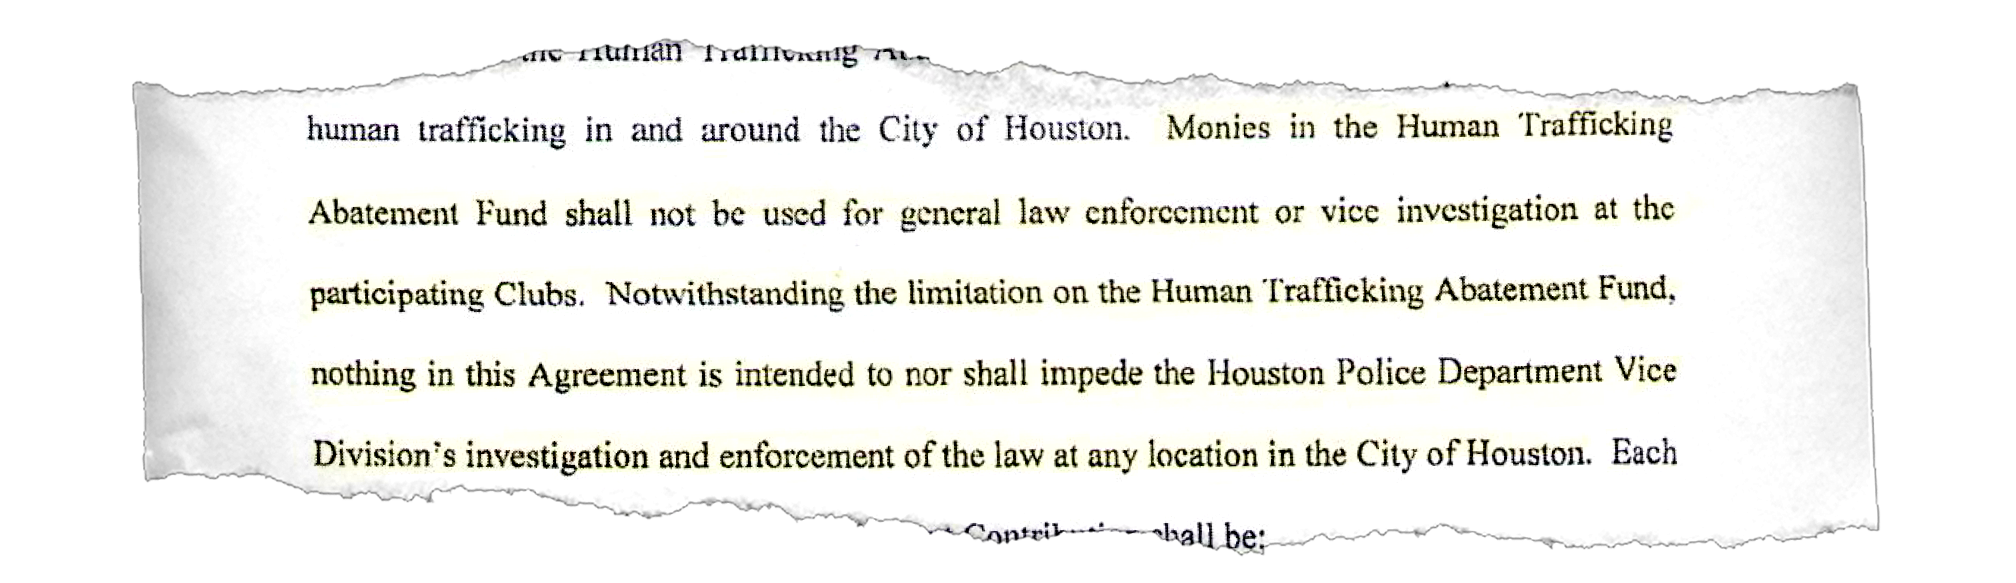 """Monies in the Human Trafficking Abatement Fund shall not be used for general law enforcement or vice investigation at the participating Clubs. Notwithstanding the limitation on the Human Trafficking Abatement Fund, nothing in this Agreement is intended to nor shall impede the Houston Police Department Vice Division's investigation and enforcement of the law at any location in the City of Houston."""""""